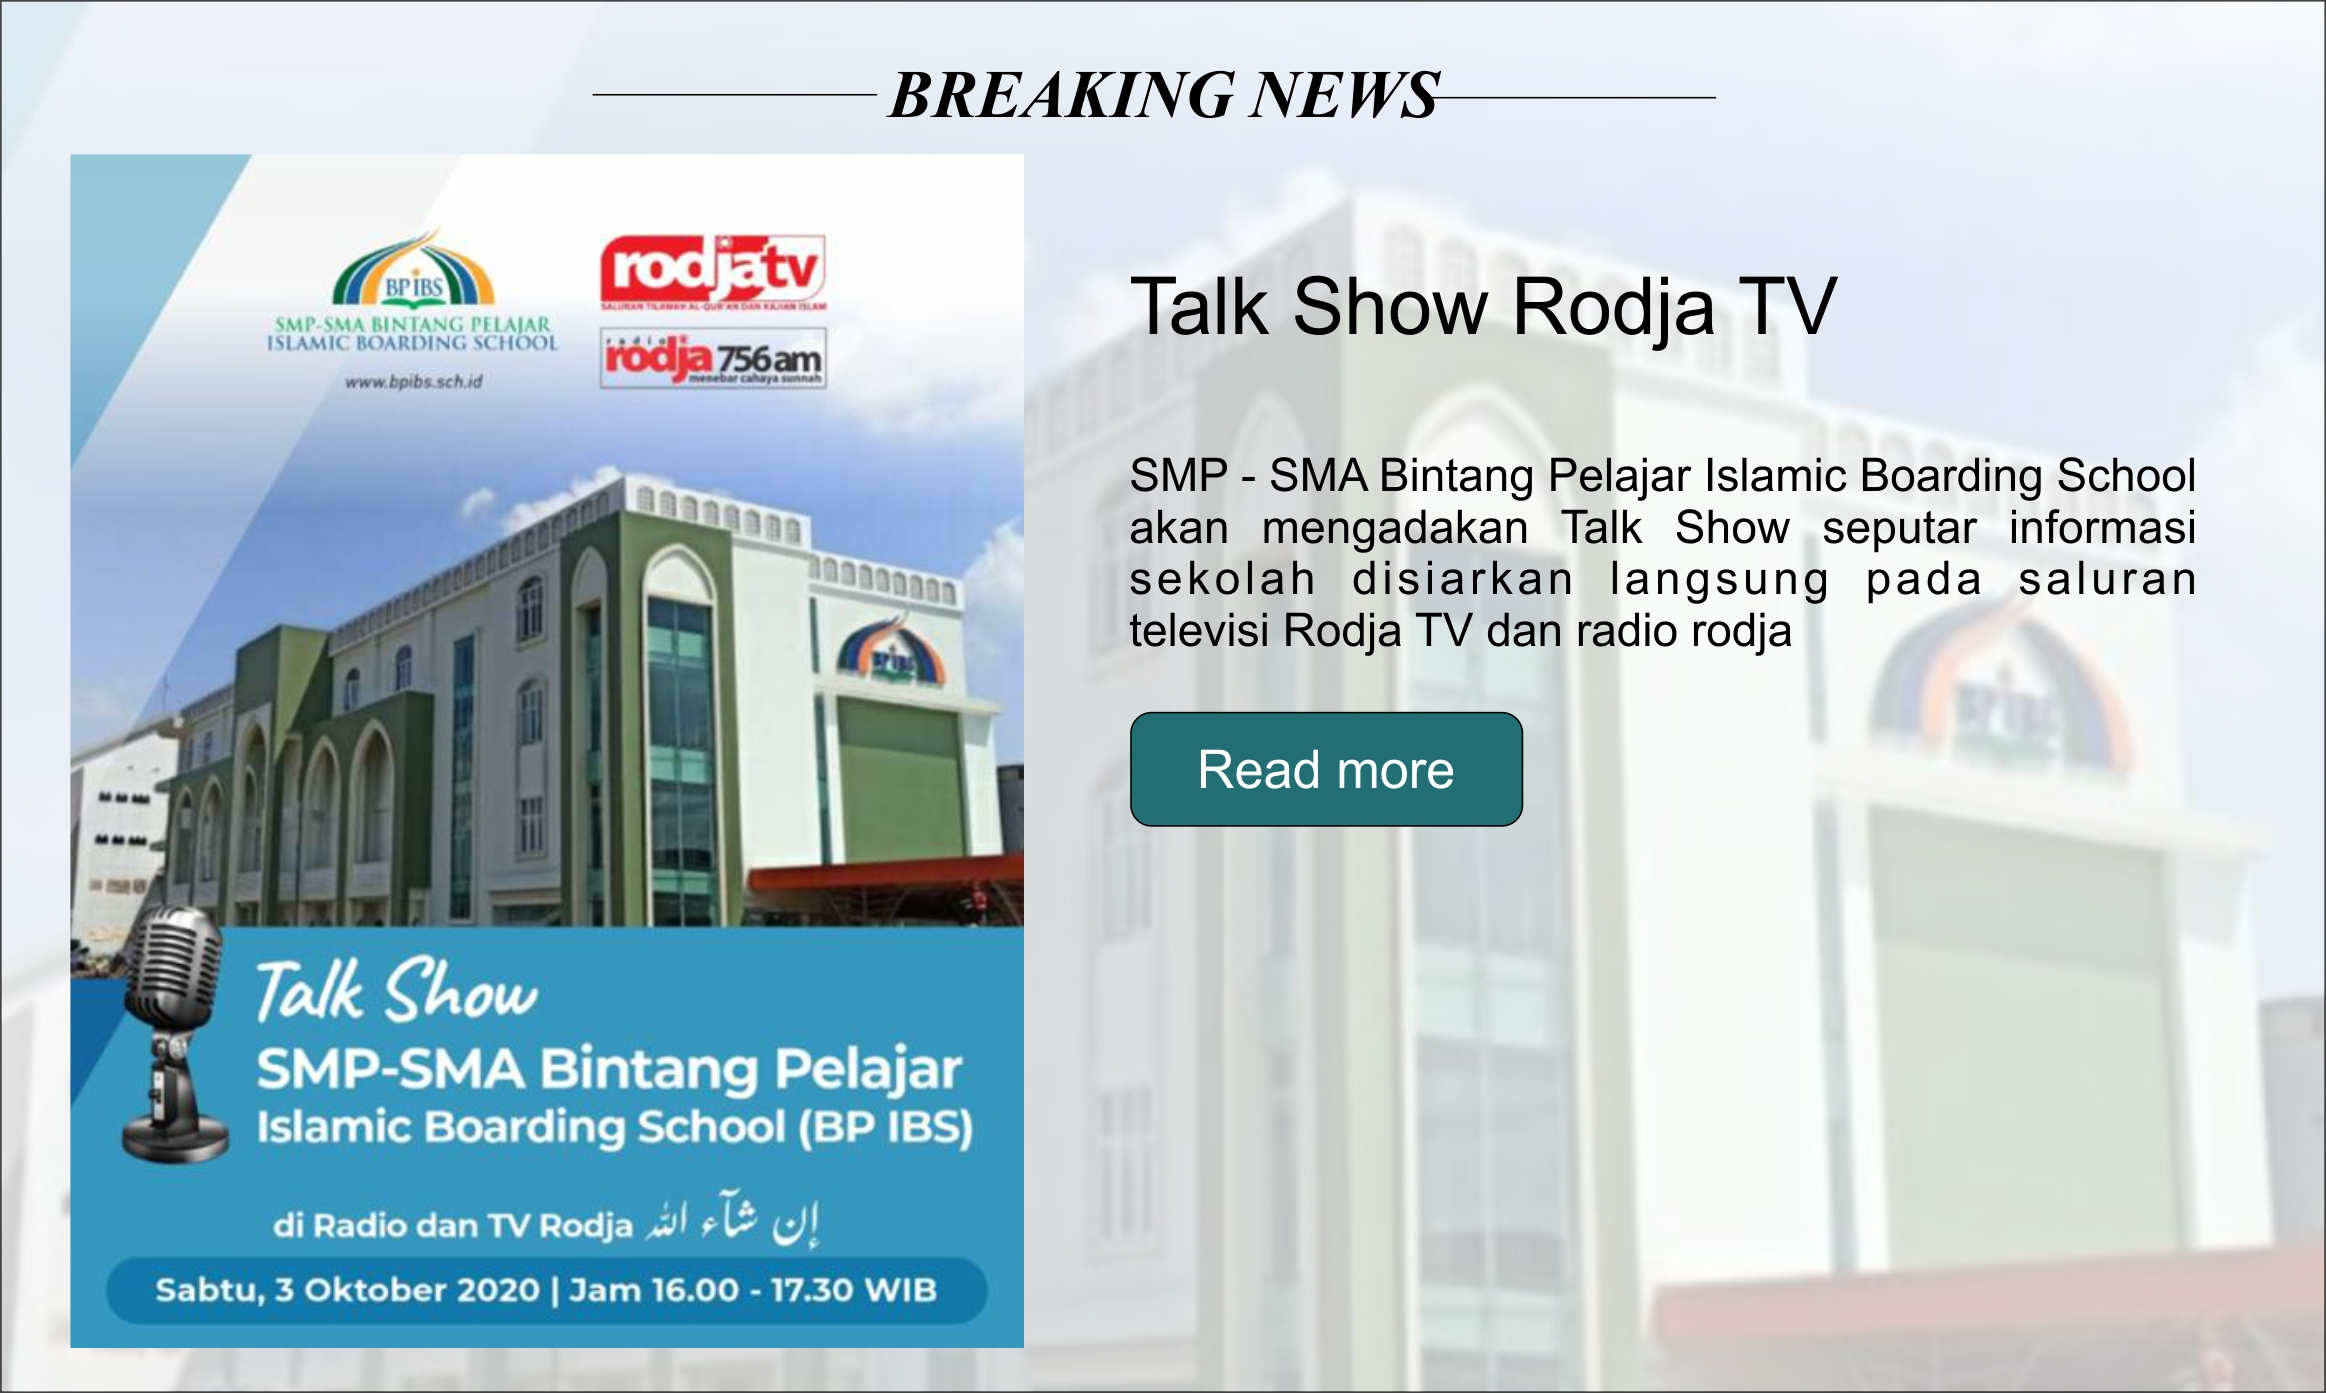 Talk Show Rodja TV dan Radio Rodja